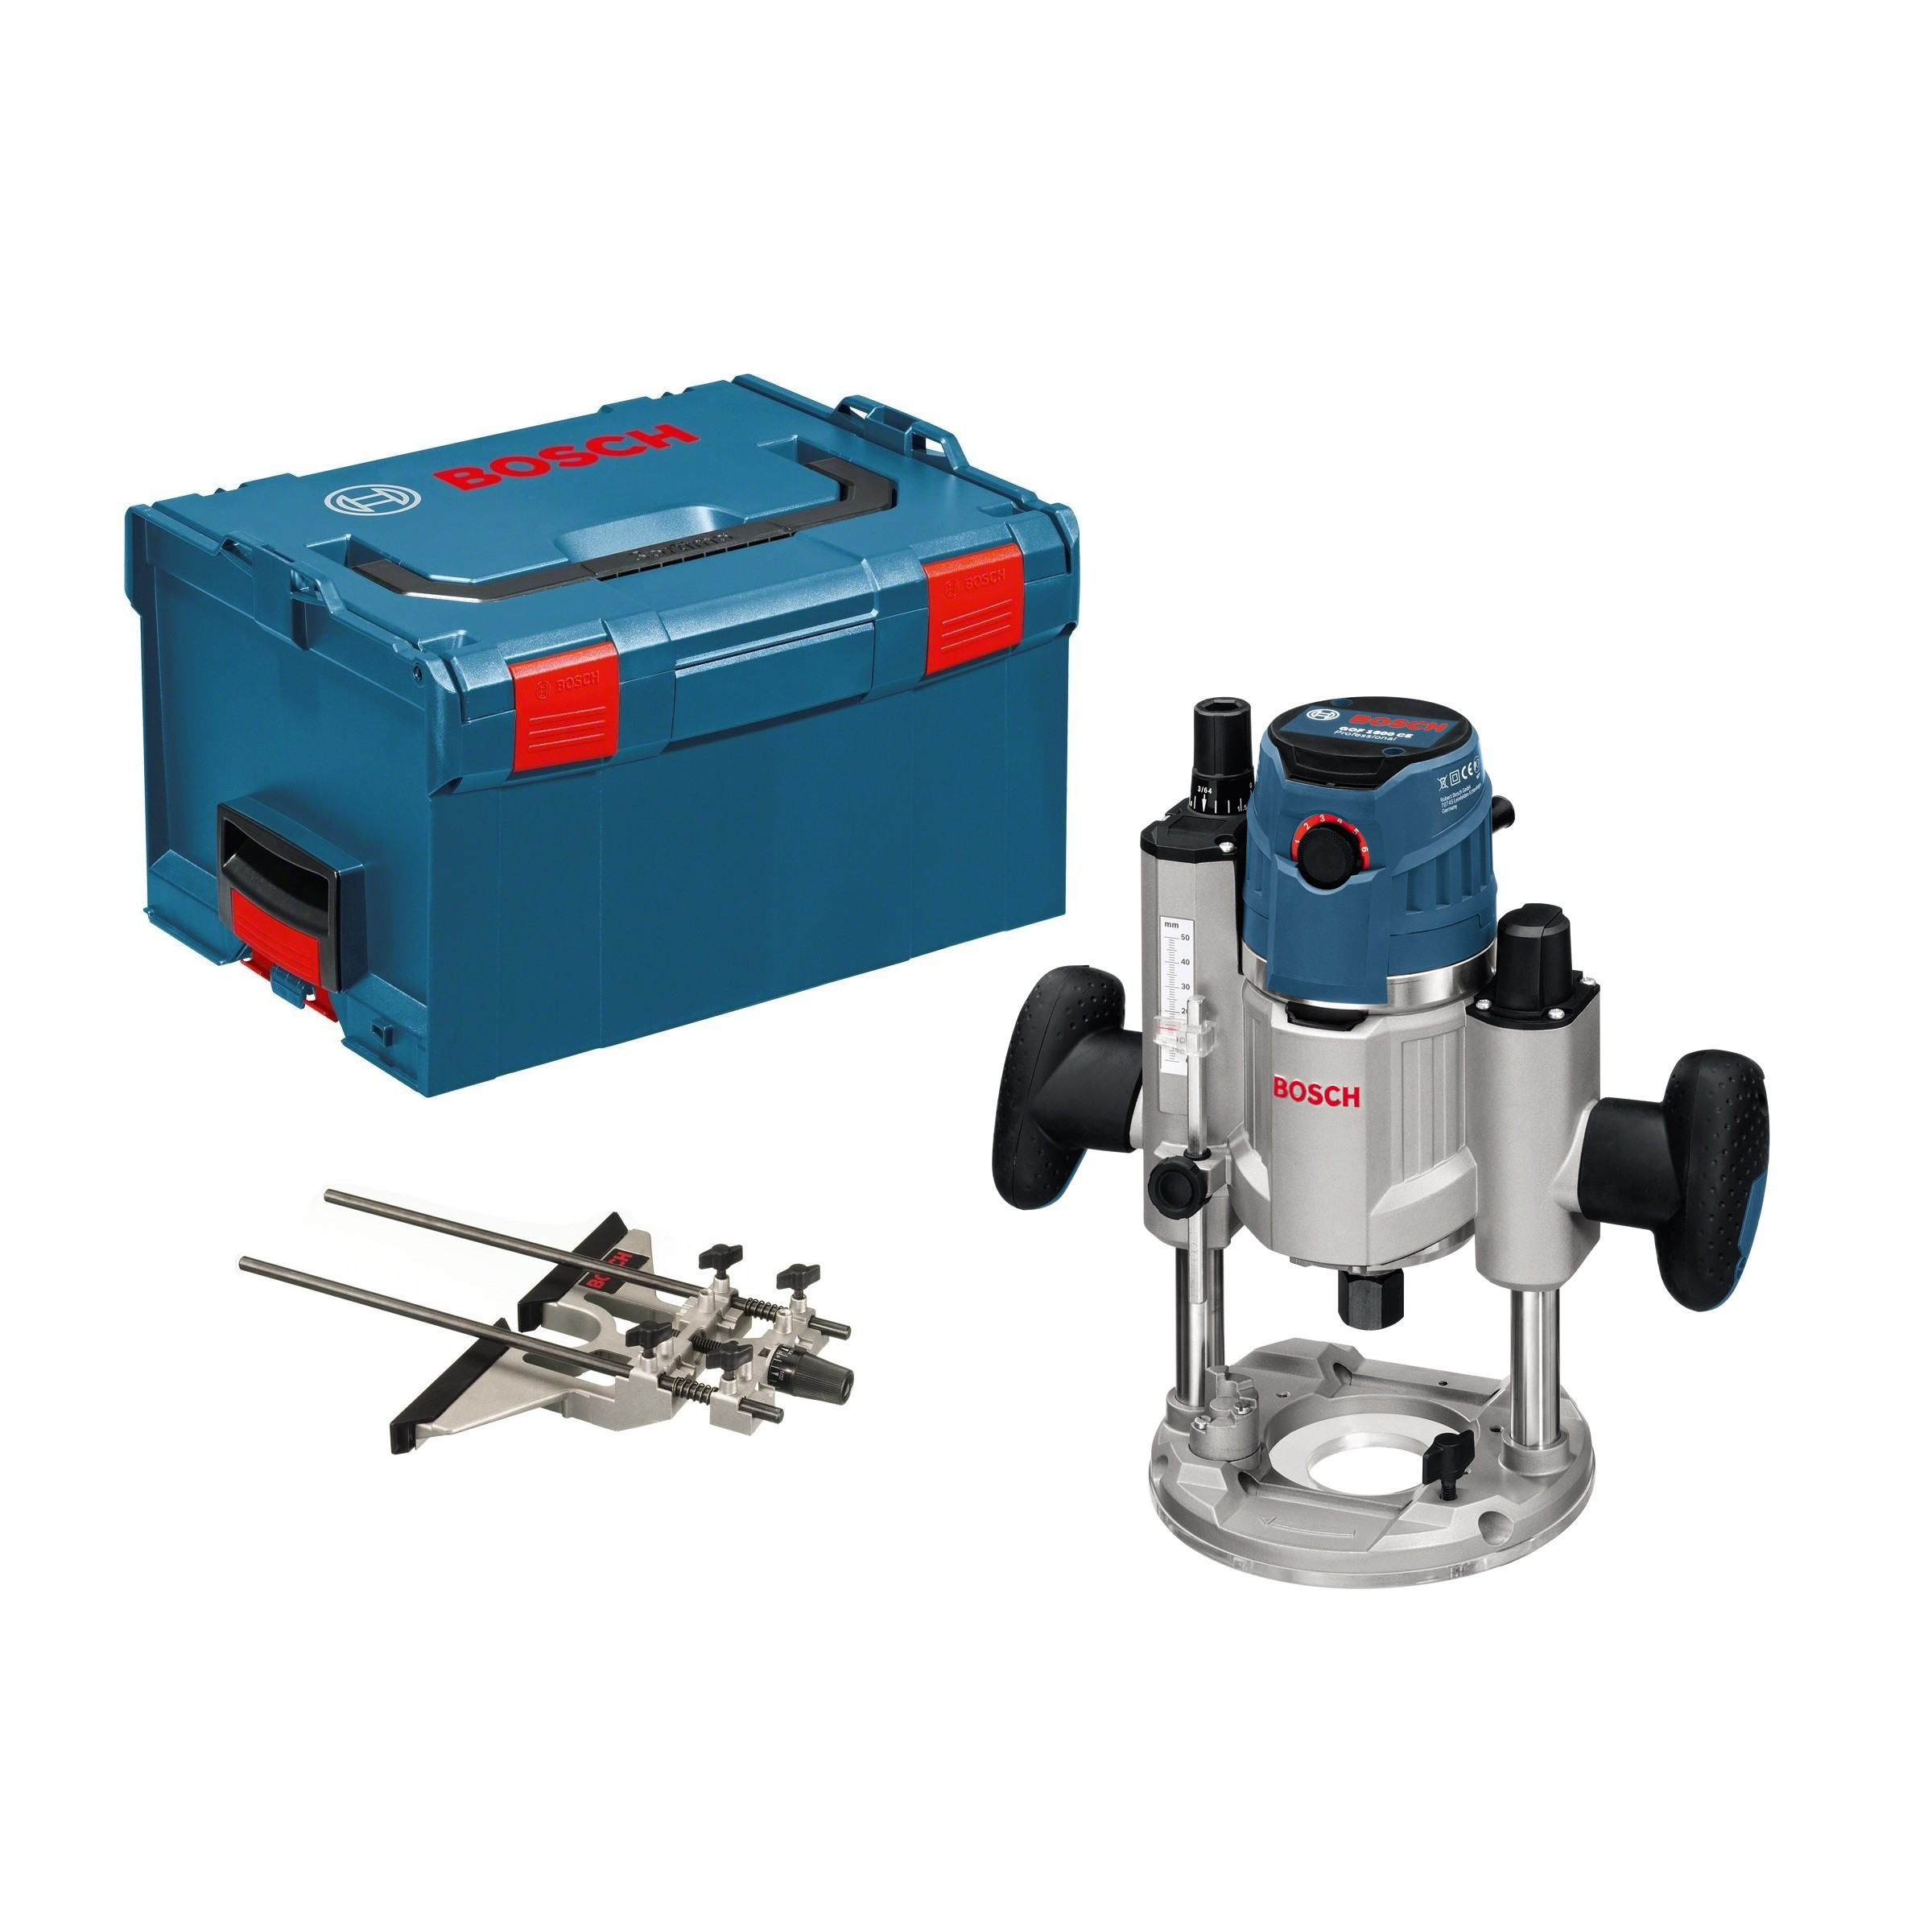 "Bosch GOF 1600 CE Professional Plunge-Cutting 1/4"" + 1/2"" Router"